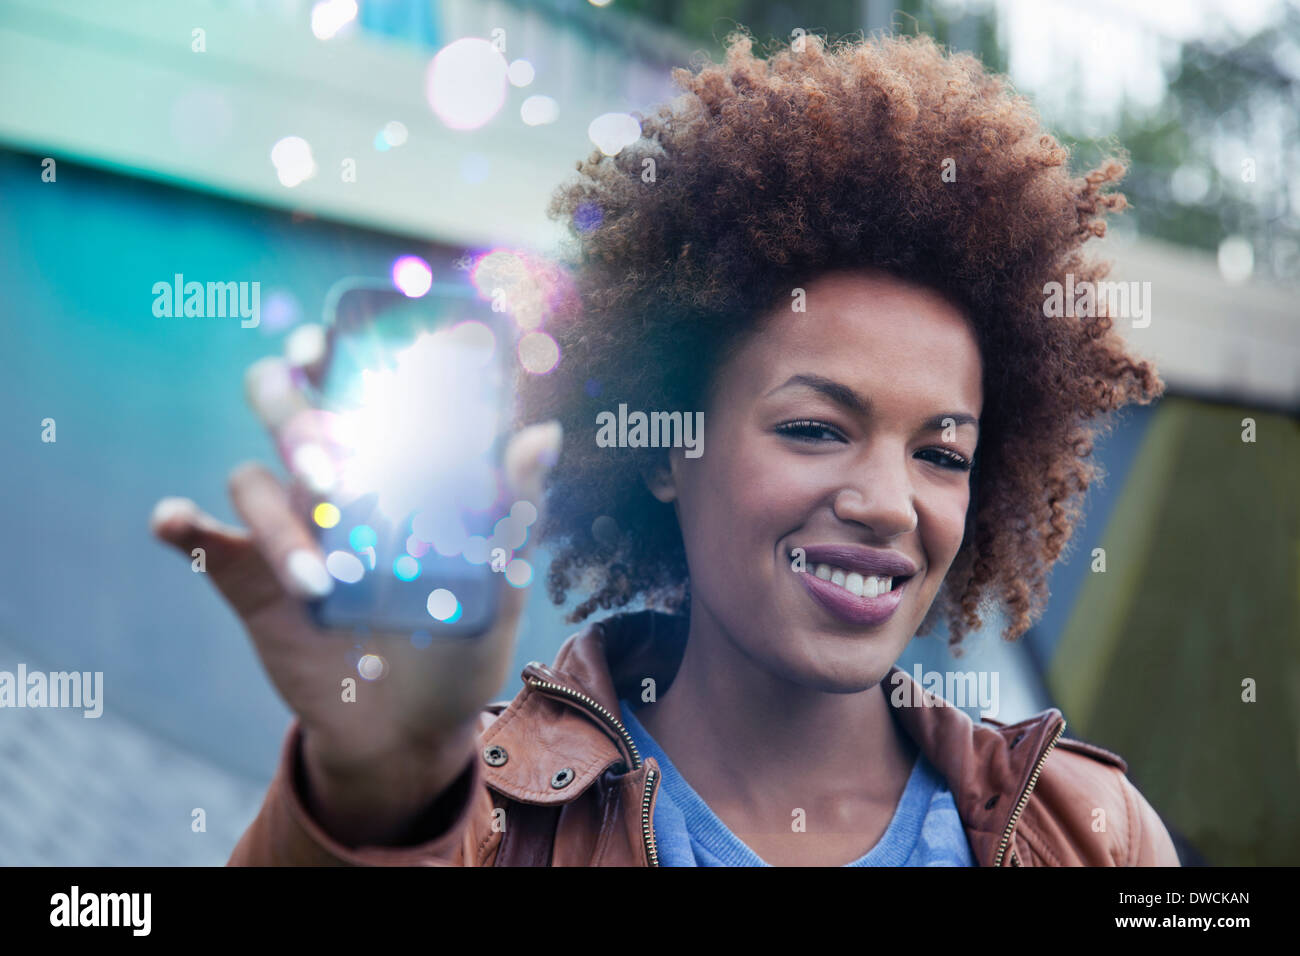 Young woman holding up smartphone avec feux lumineux sortant Photo Stock